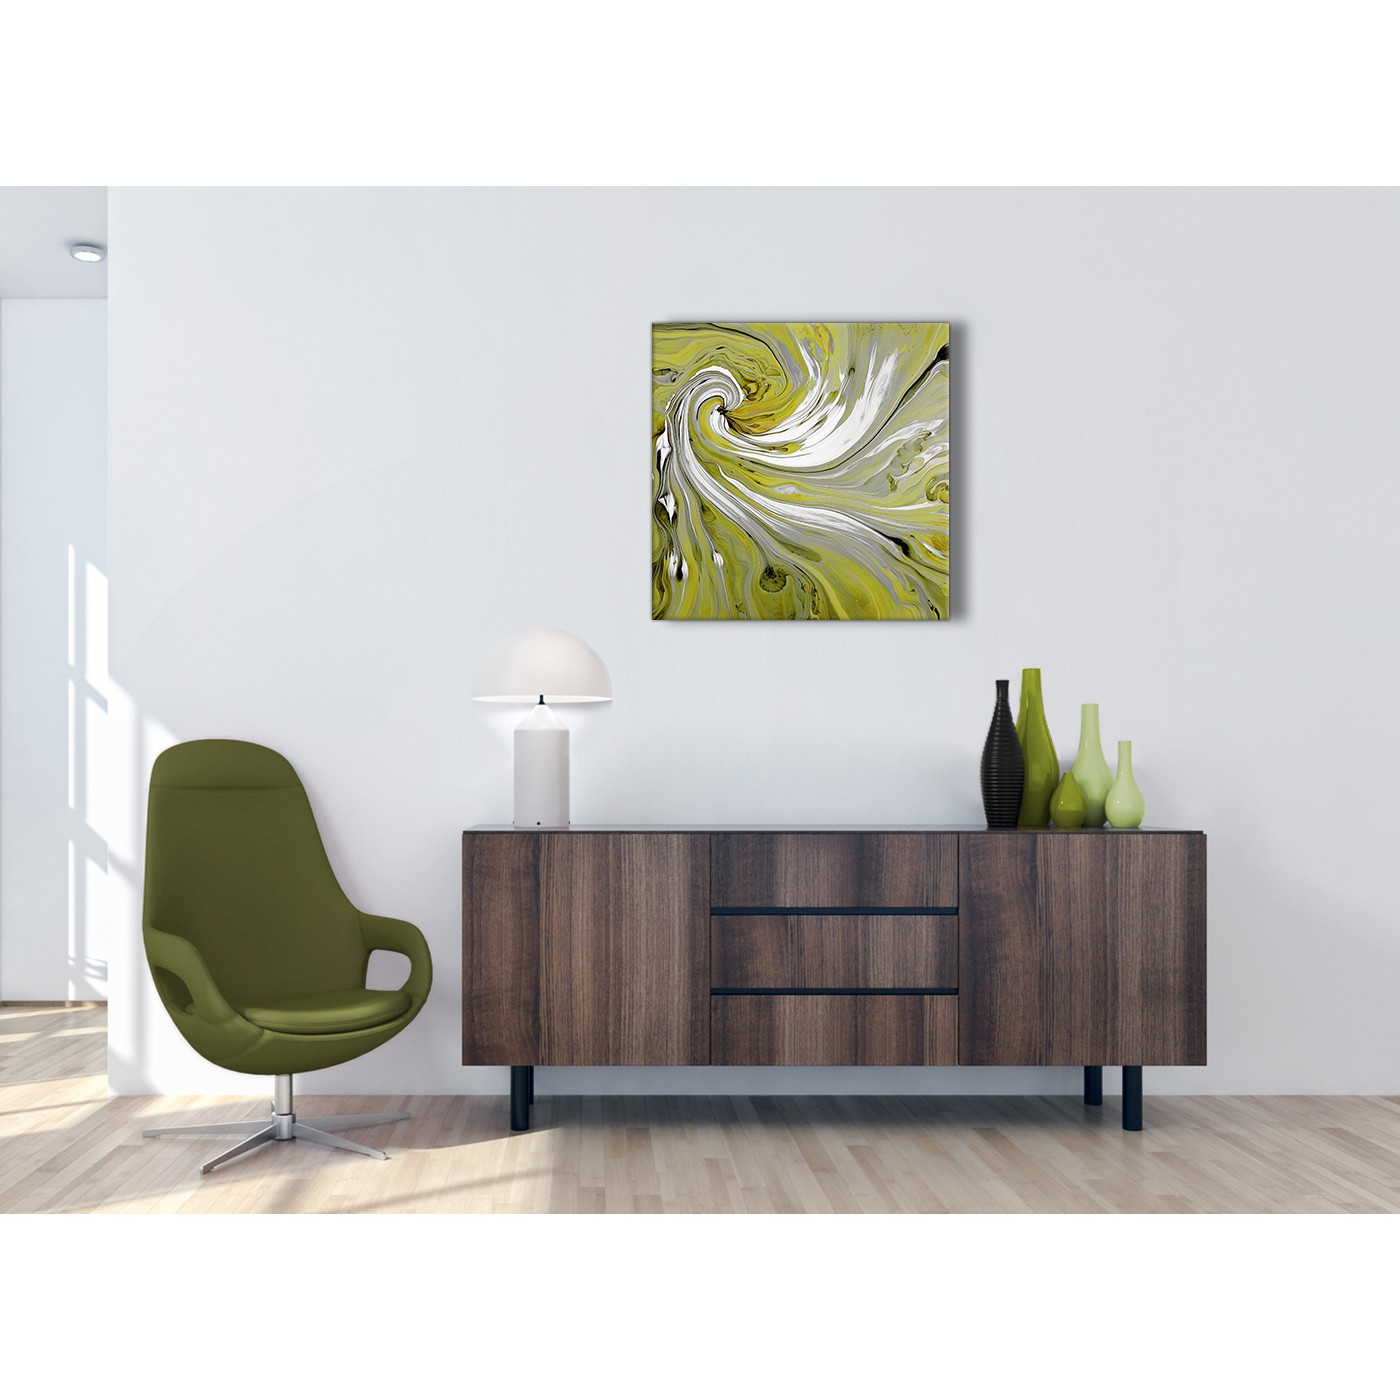 Lime green swirls modern abstract canvas wall art modern for Lime green wall art